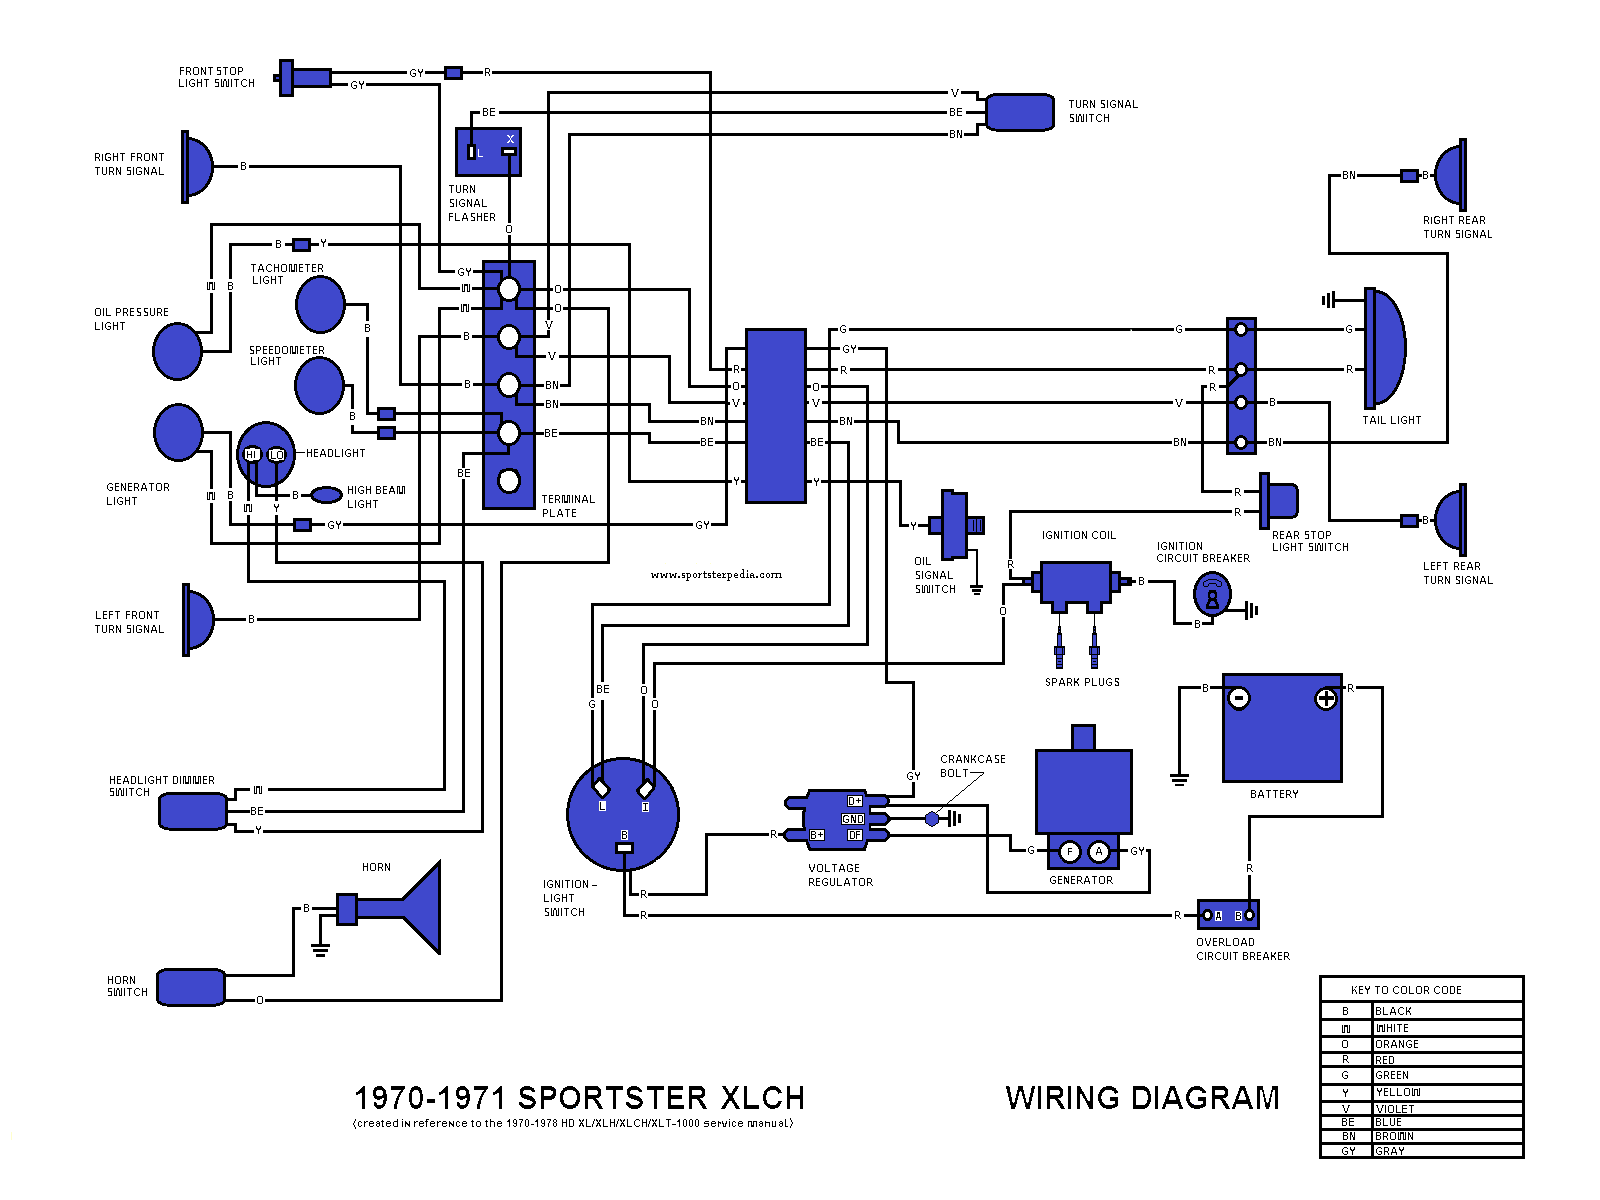 Diagram Wiring Diagrams 77 Sportster Xlch Full Version Hd Quality Sportster Xlch Wiringservi2 Creasitionline It